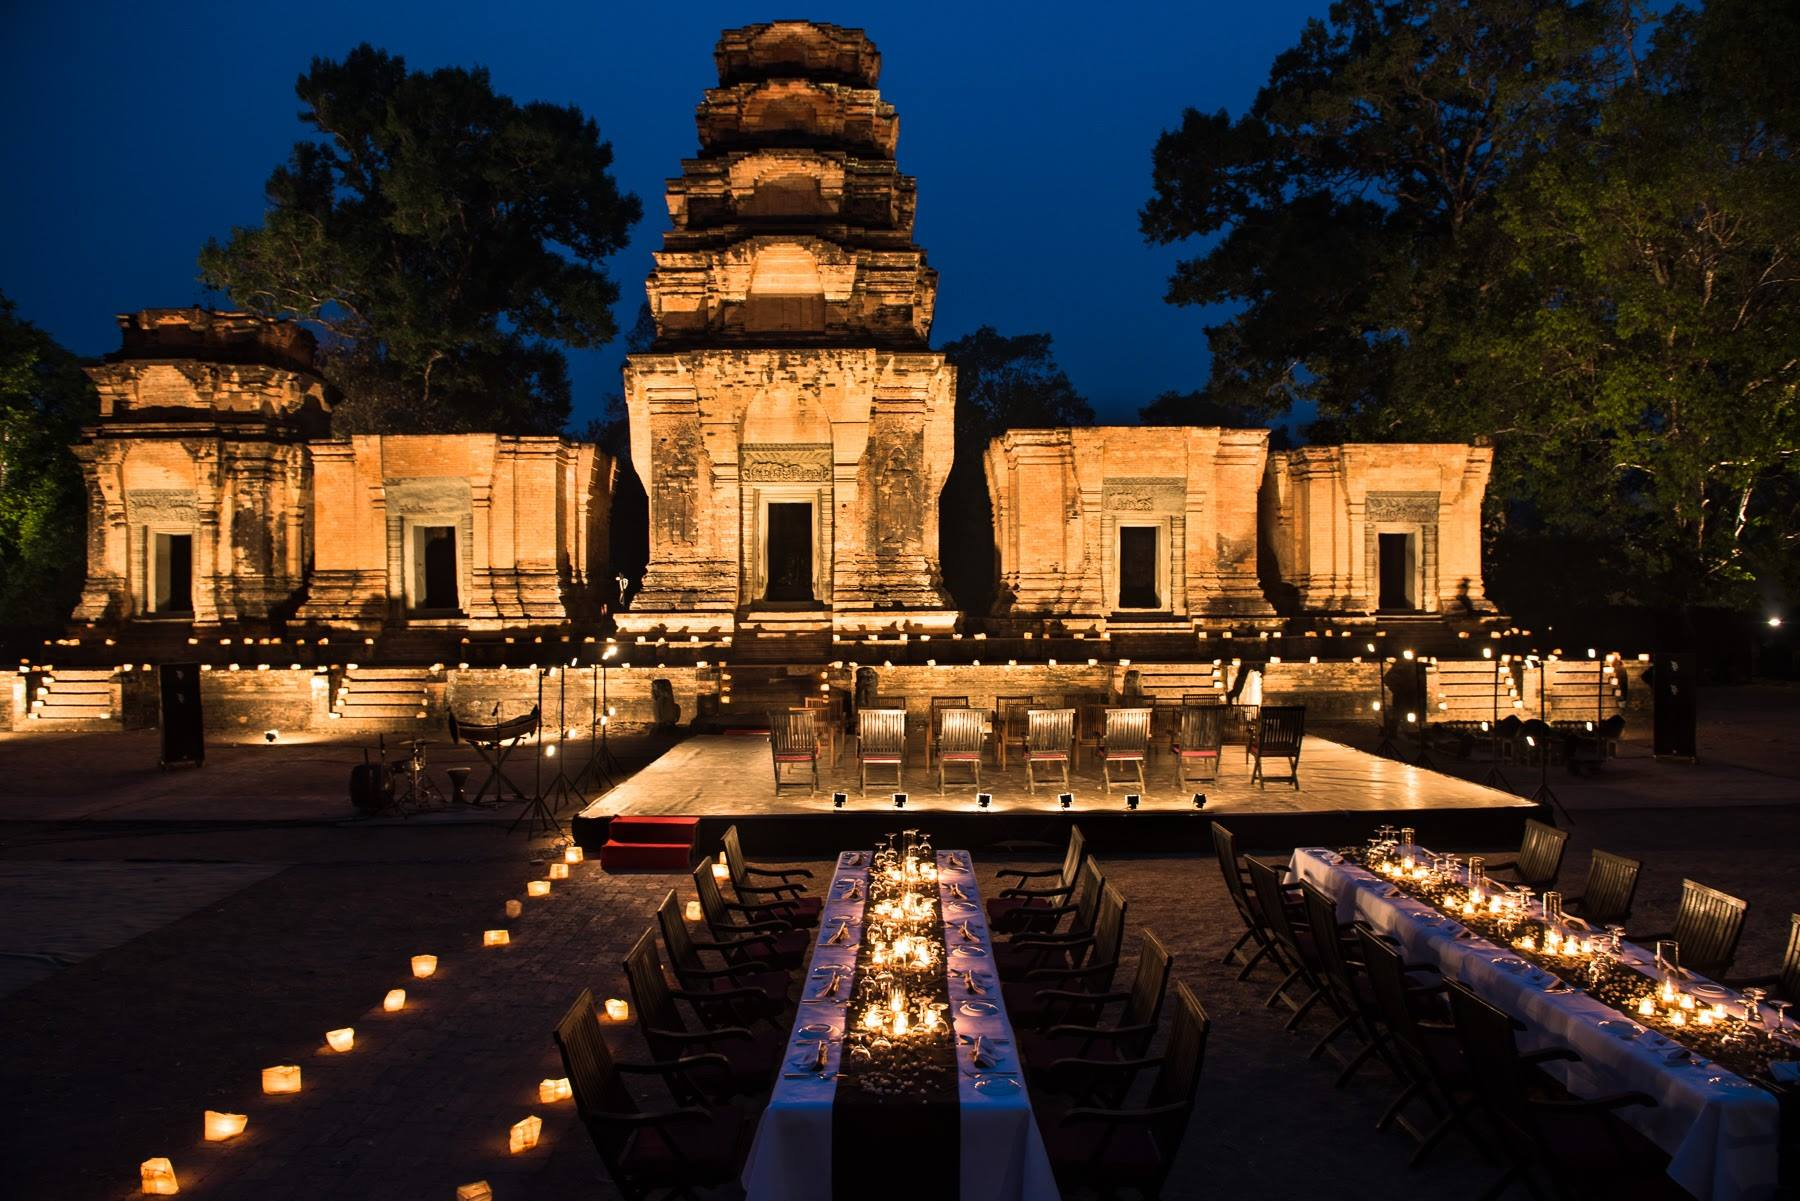 Cambodian temple at night